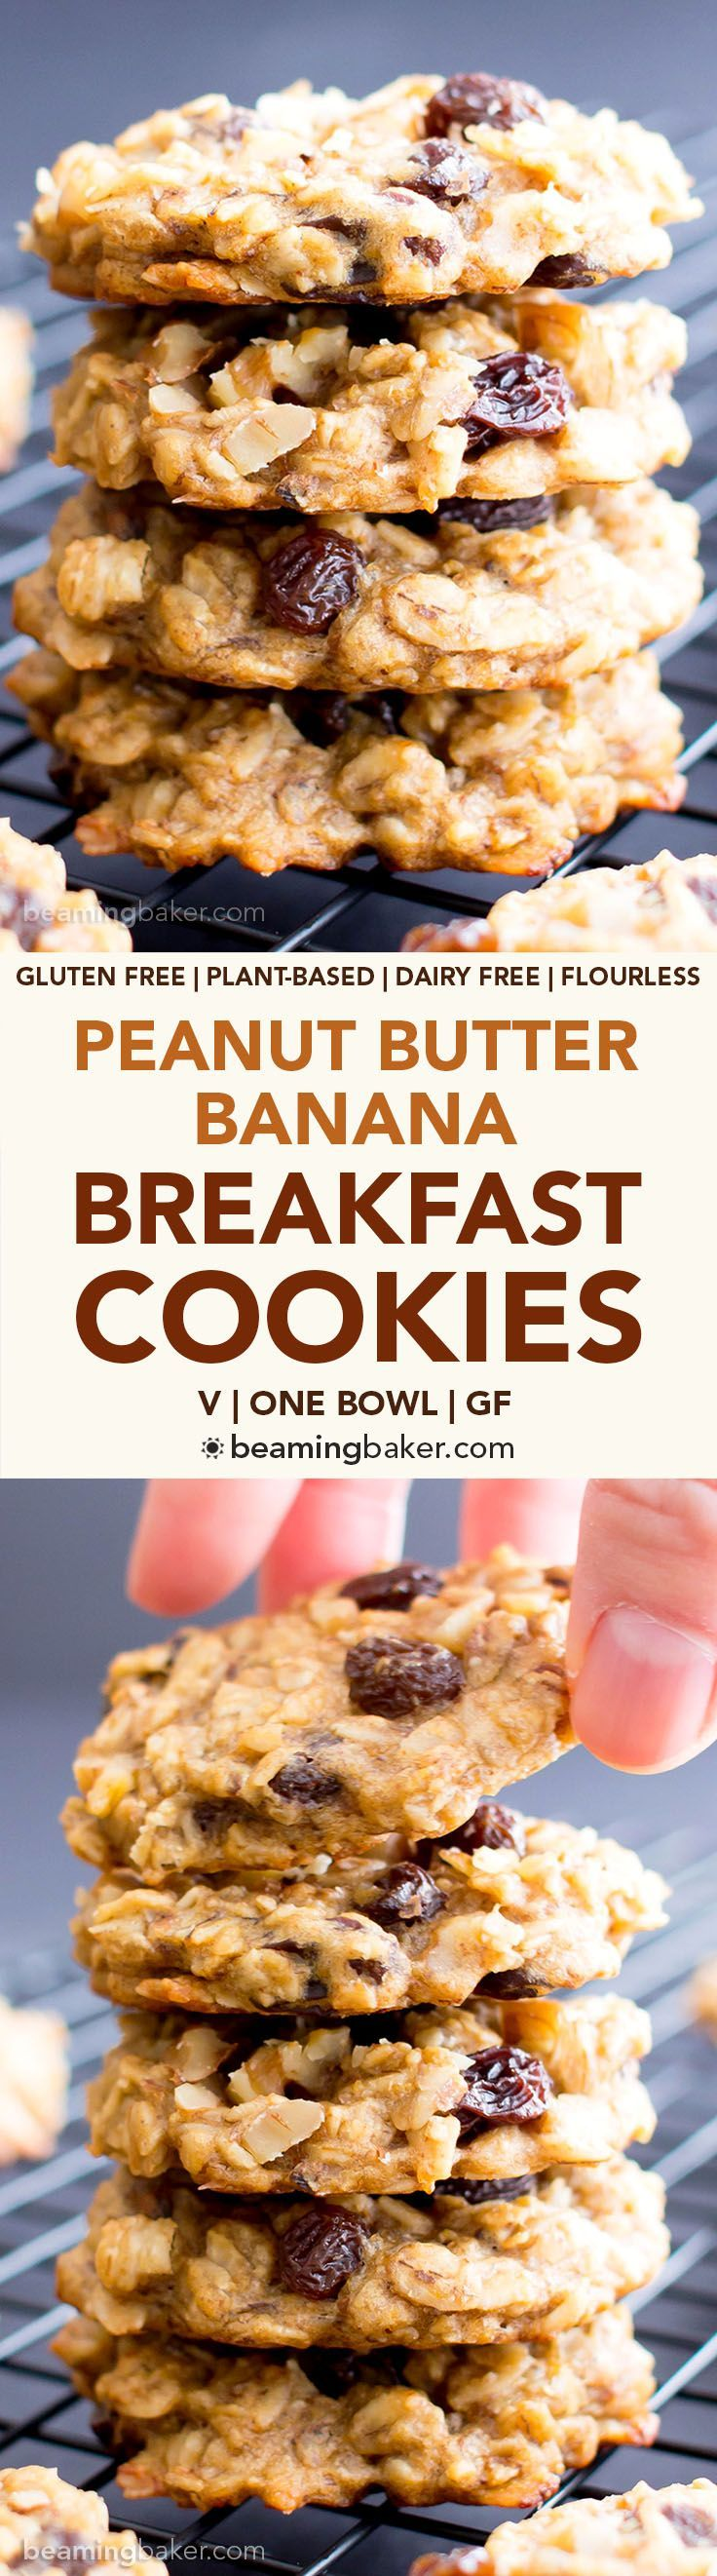 Easy Vegan Peanut Butter Banana Breakfast Cookies (V, GF): a one bowl recipe for chewy, protein-rich banana cookies, plus a great excuse to eat COOKIES for breakfast!